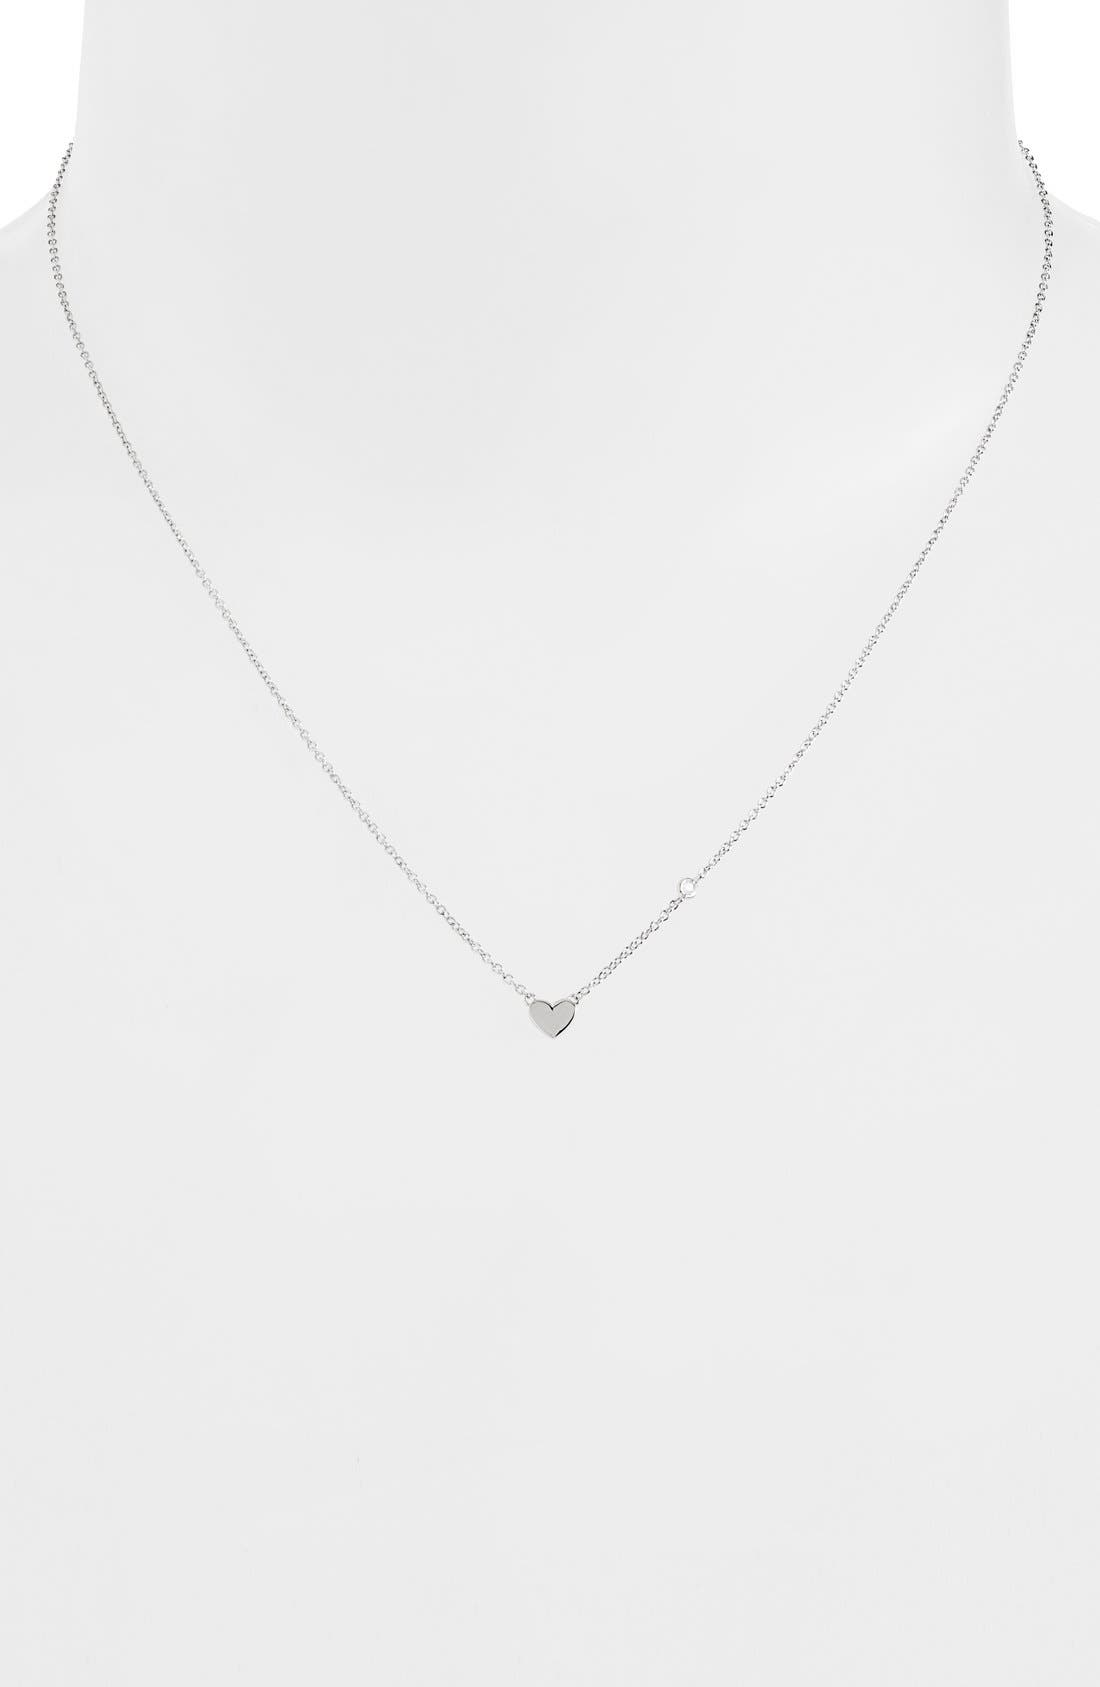 Shy by SE Heart Necklace,                             Alternate thumbnail 2, color,                             040